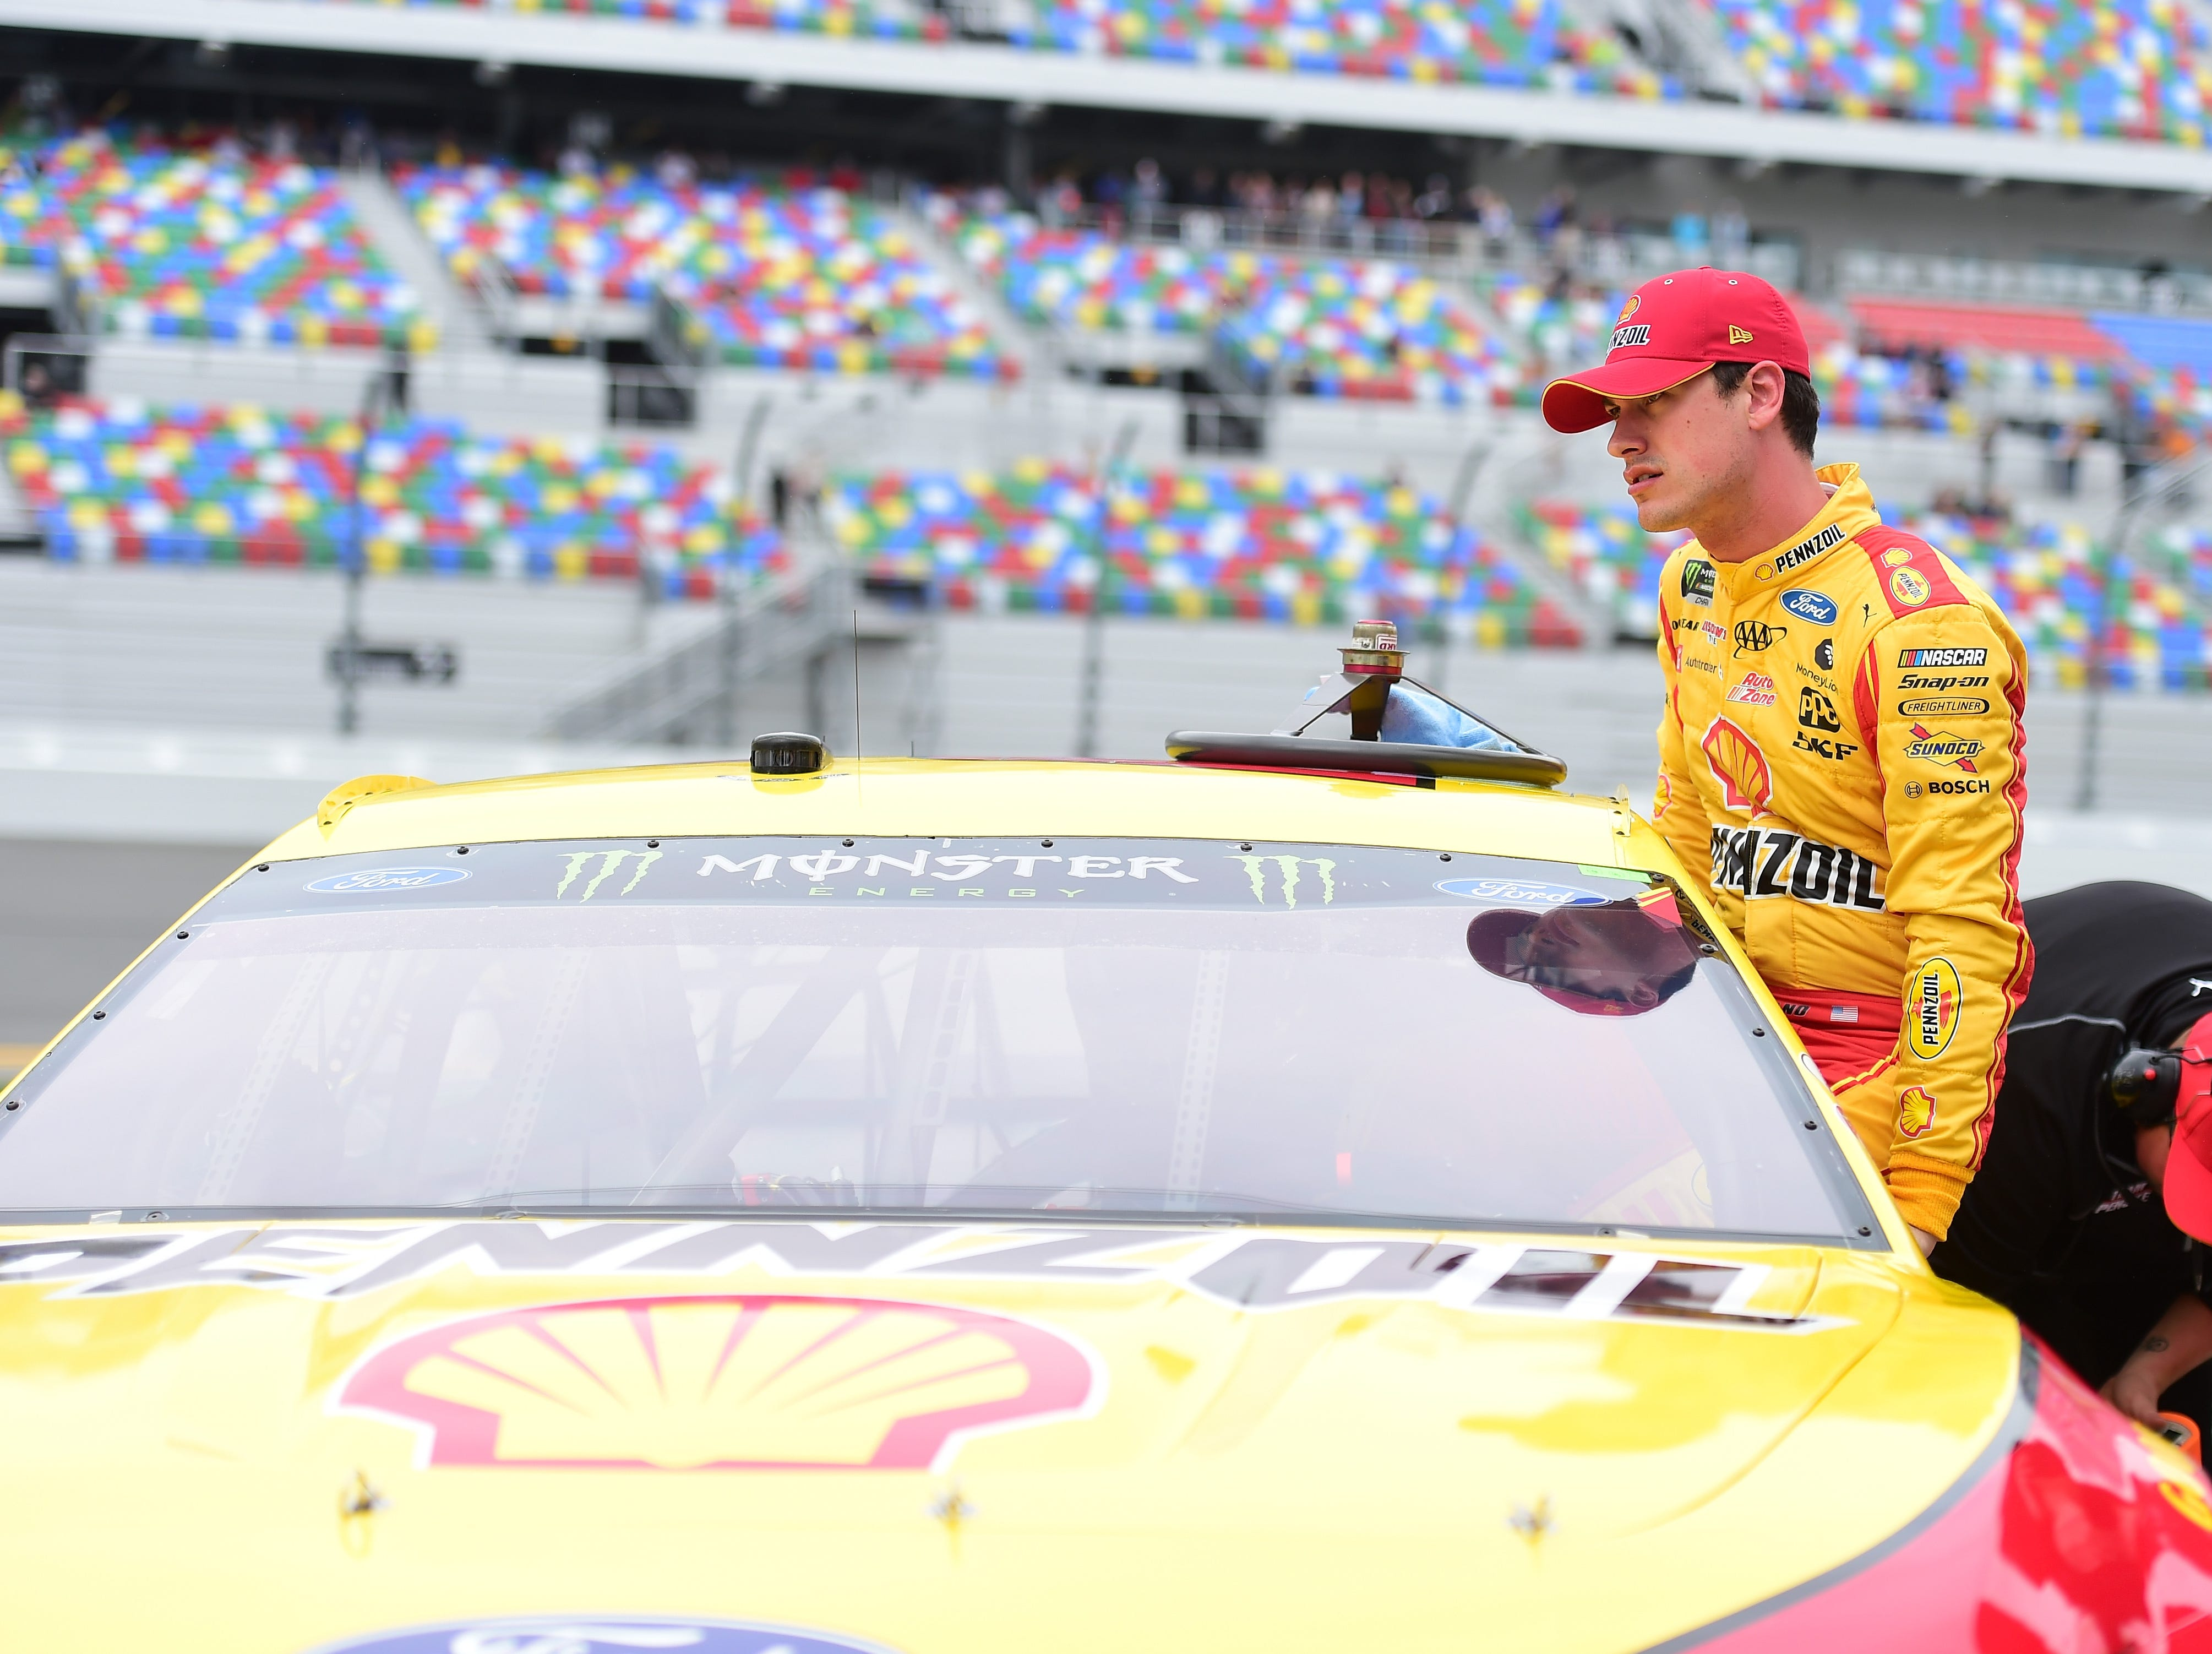 Feb. 10: Joey Logano, the 2018 Monster Energy NASCAR Cup Series champion, prepares to qualify for the 2019 Daytona 500.